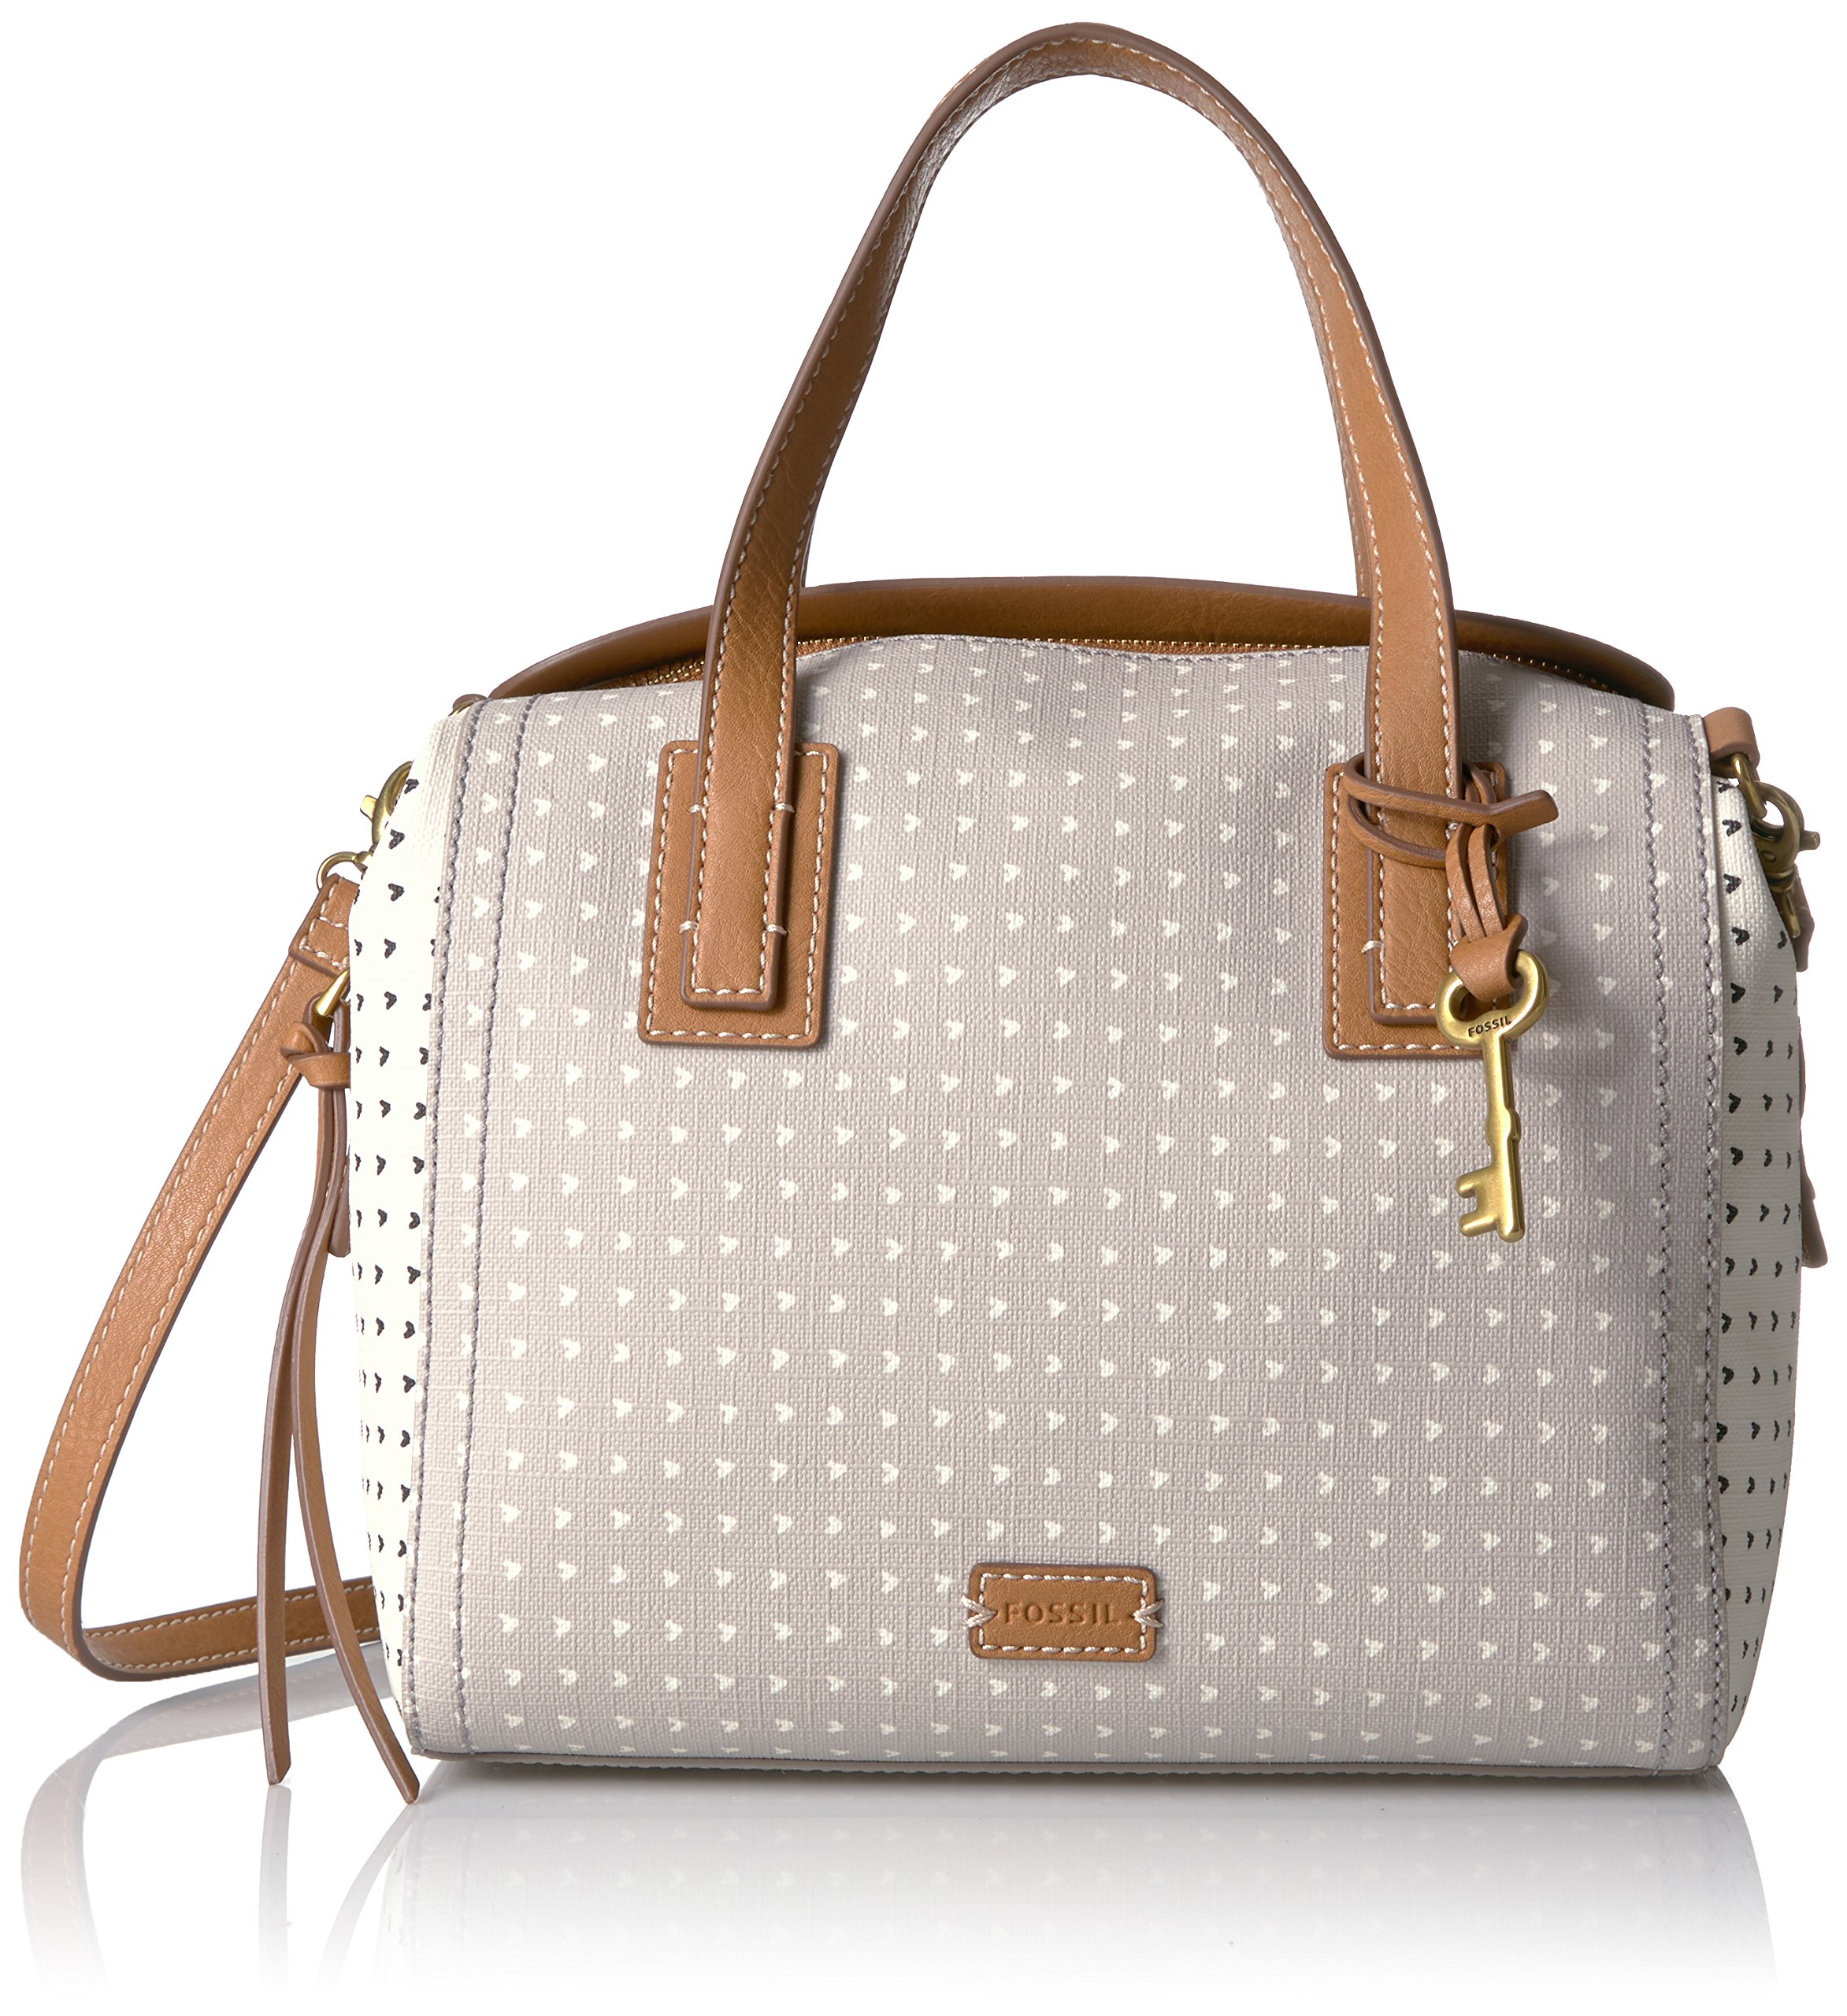 Fossil Emma Satchel, Grey/White, One Size by Fossil